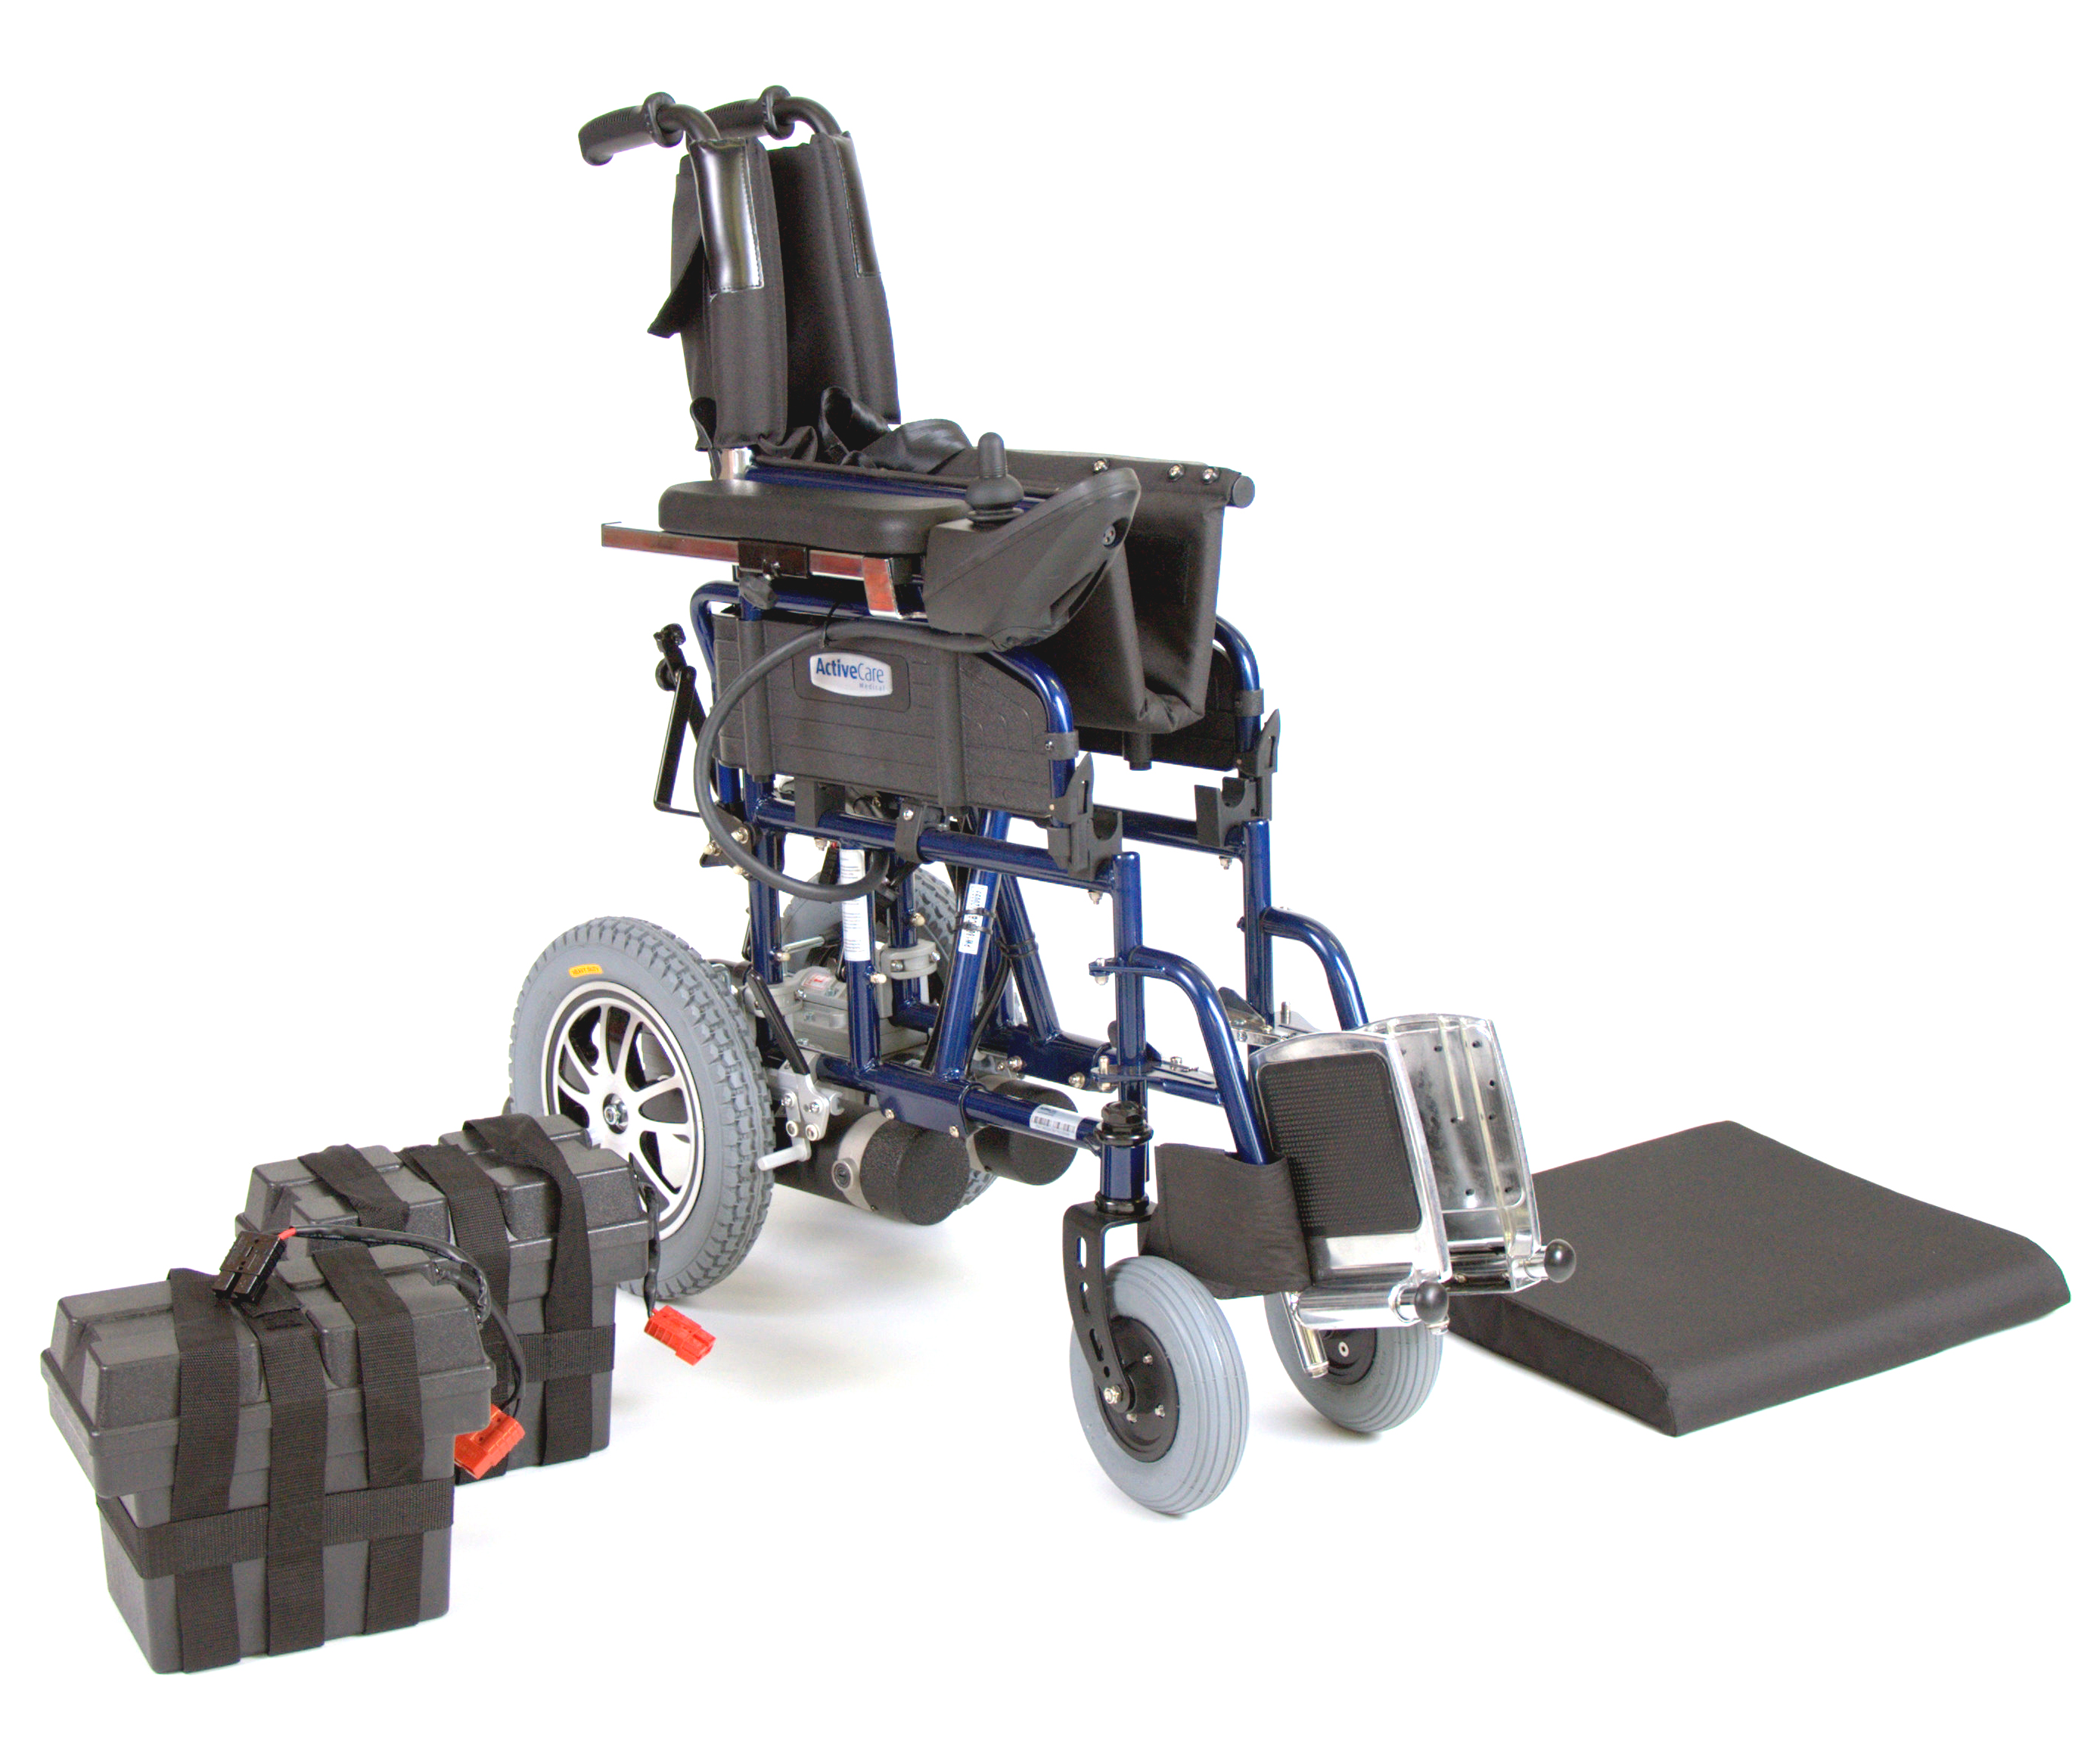 wildcat-folding-power-wheelchair-wildcat18b-drive-medical-3.jpg